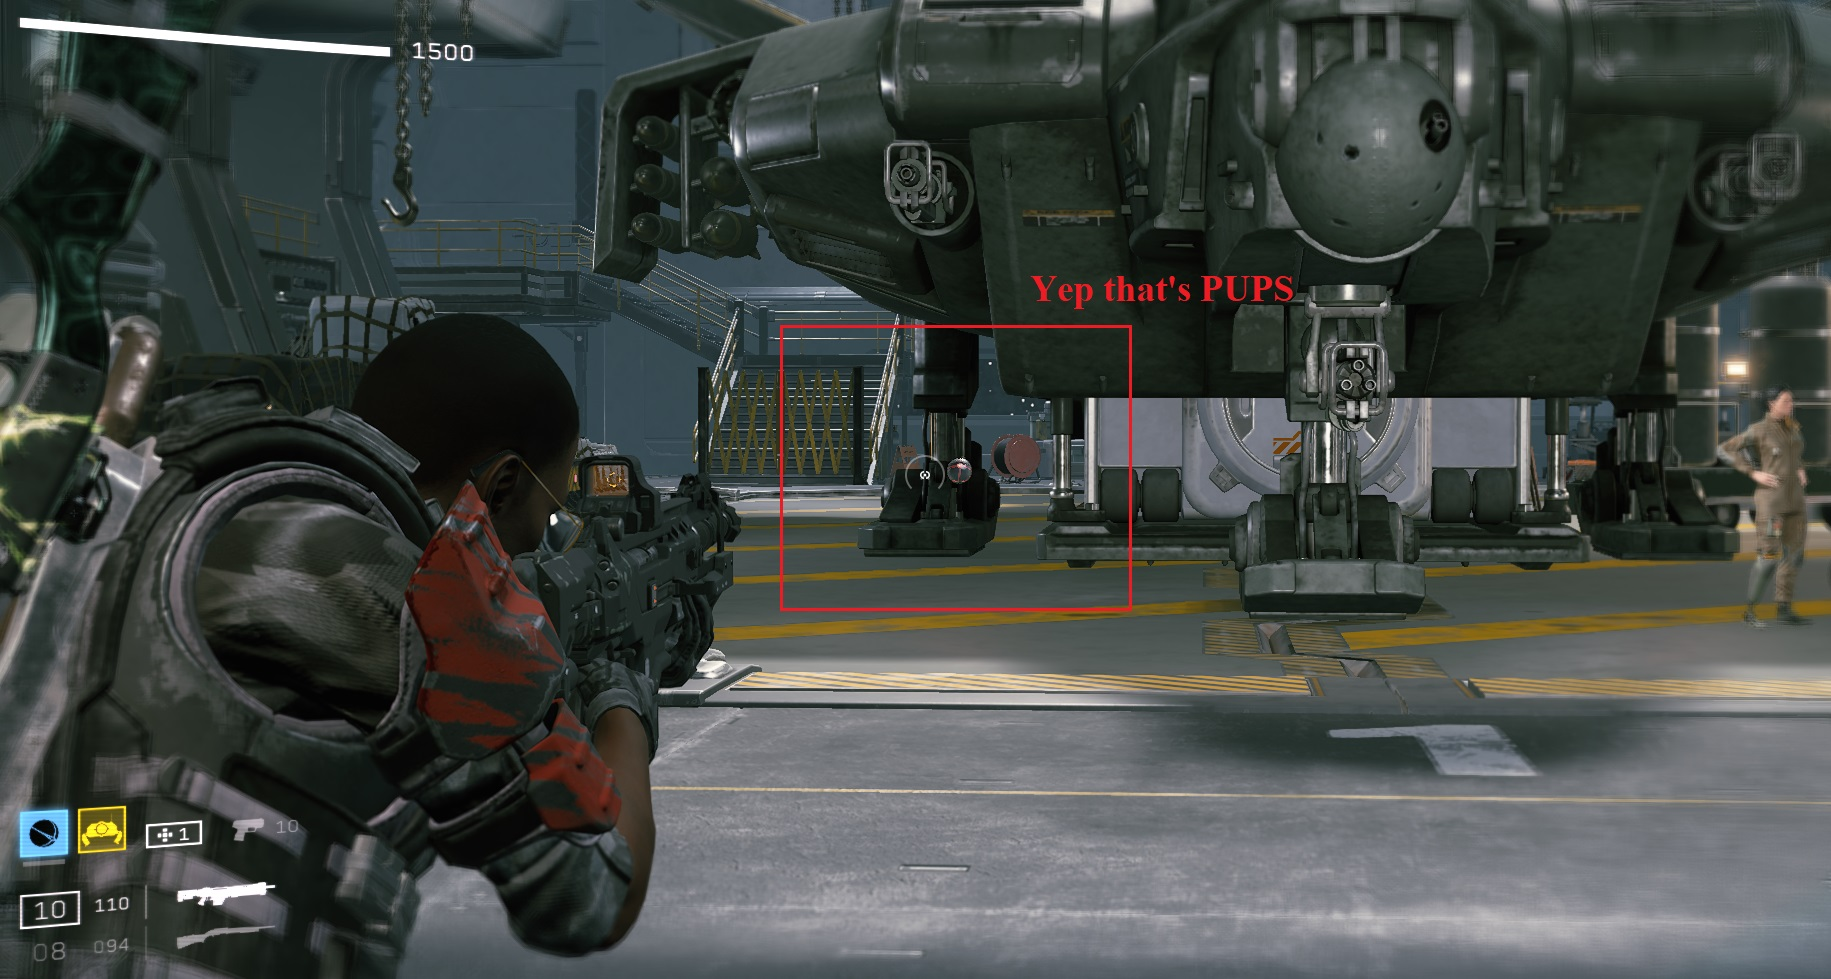 Aliens: Fireteam Elite - How to Remove Muzzle Flashes and Other Effects in Game - Why? - 16BC6E6